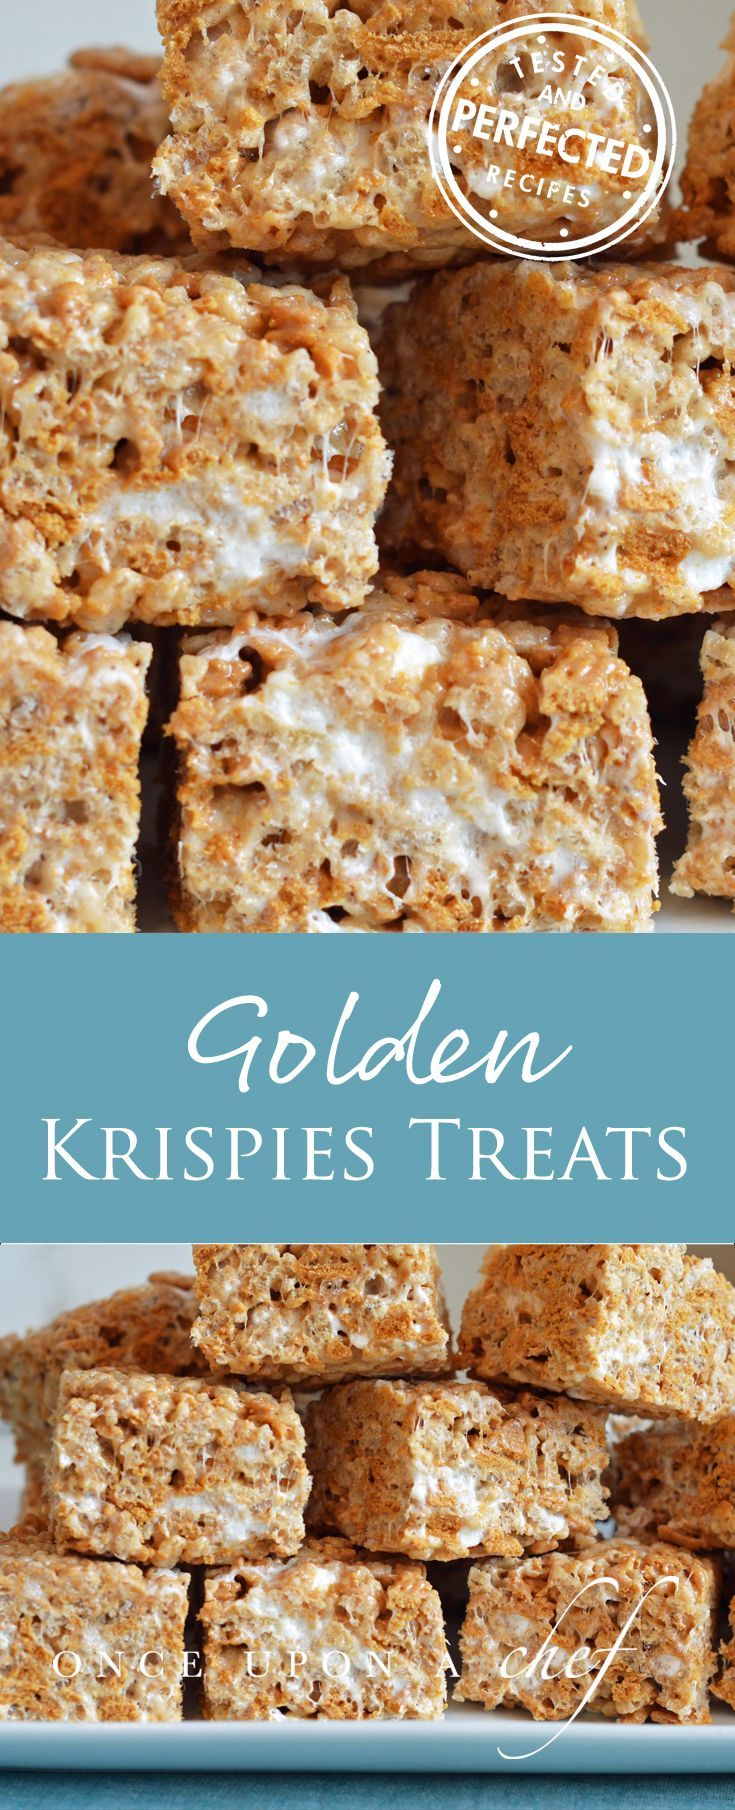 Chewy, Gooey Golden Rice Krispies Treats